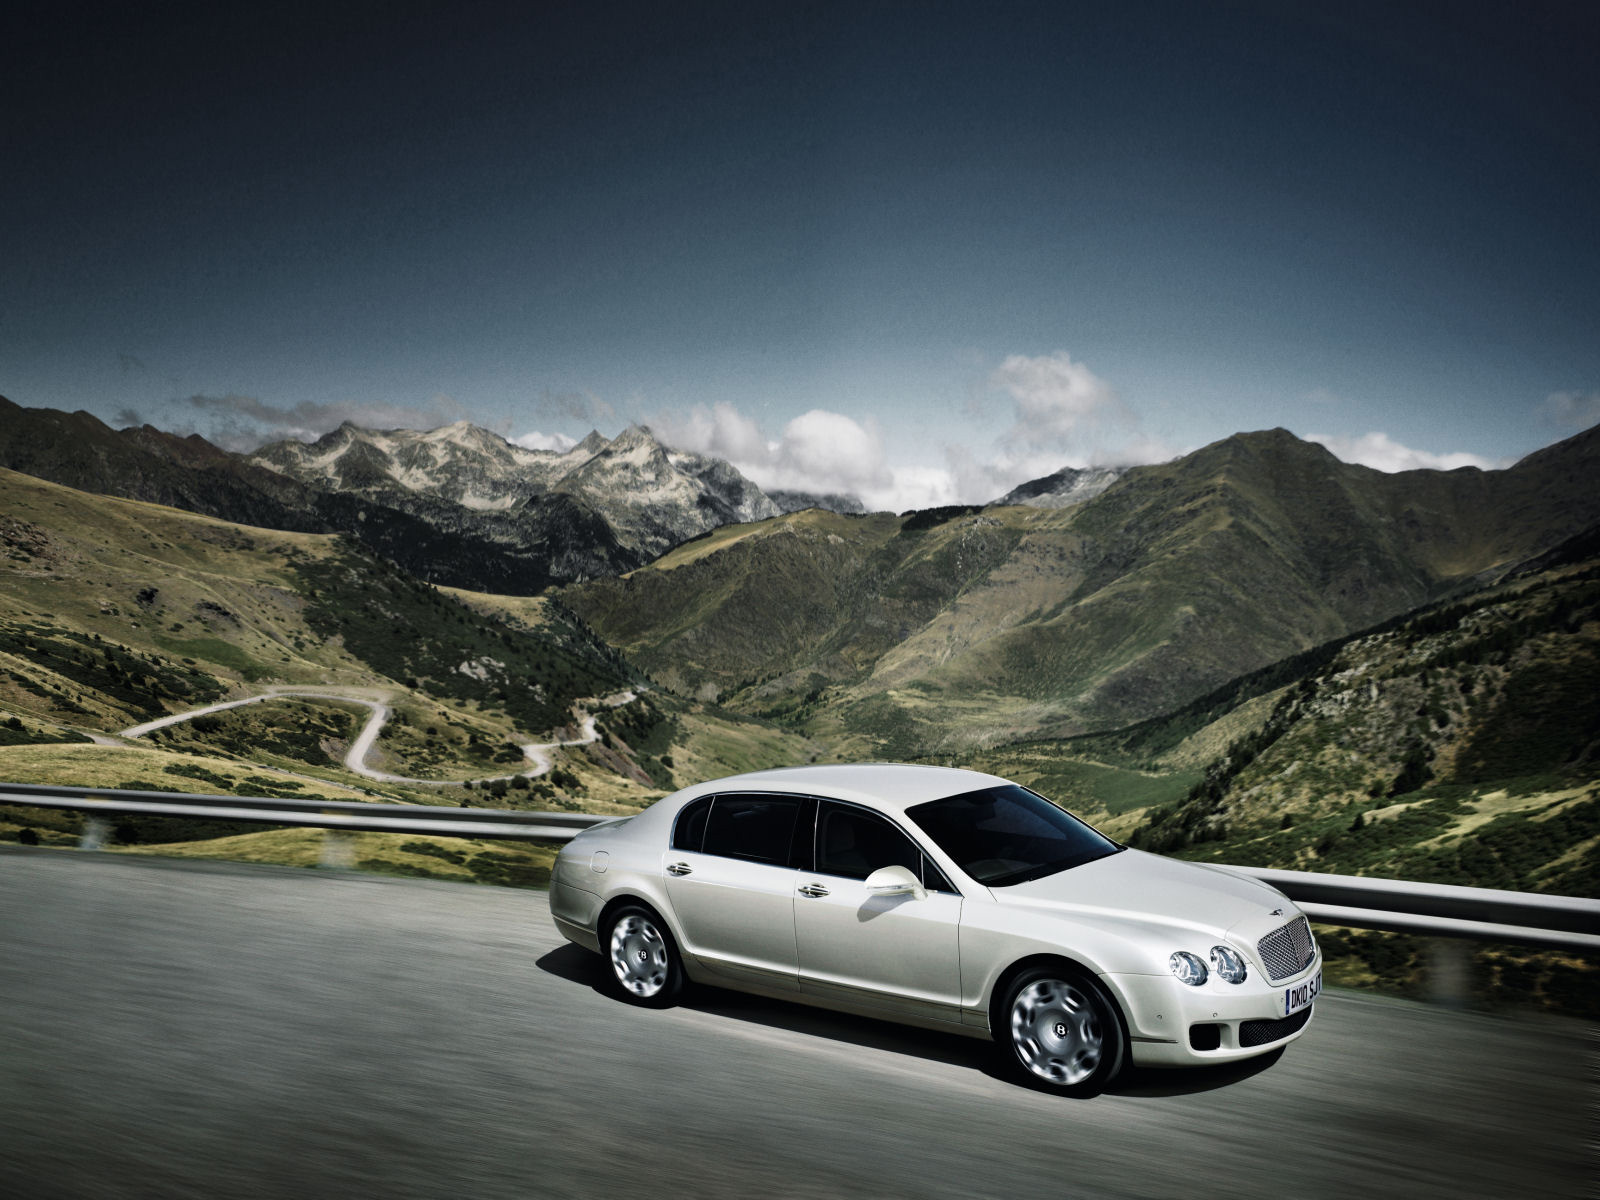 bentley continental flying spur series 51 #1